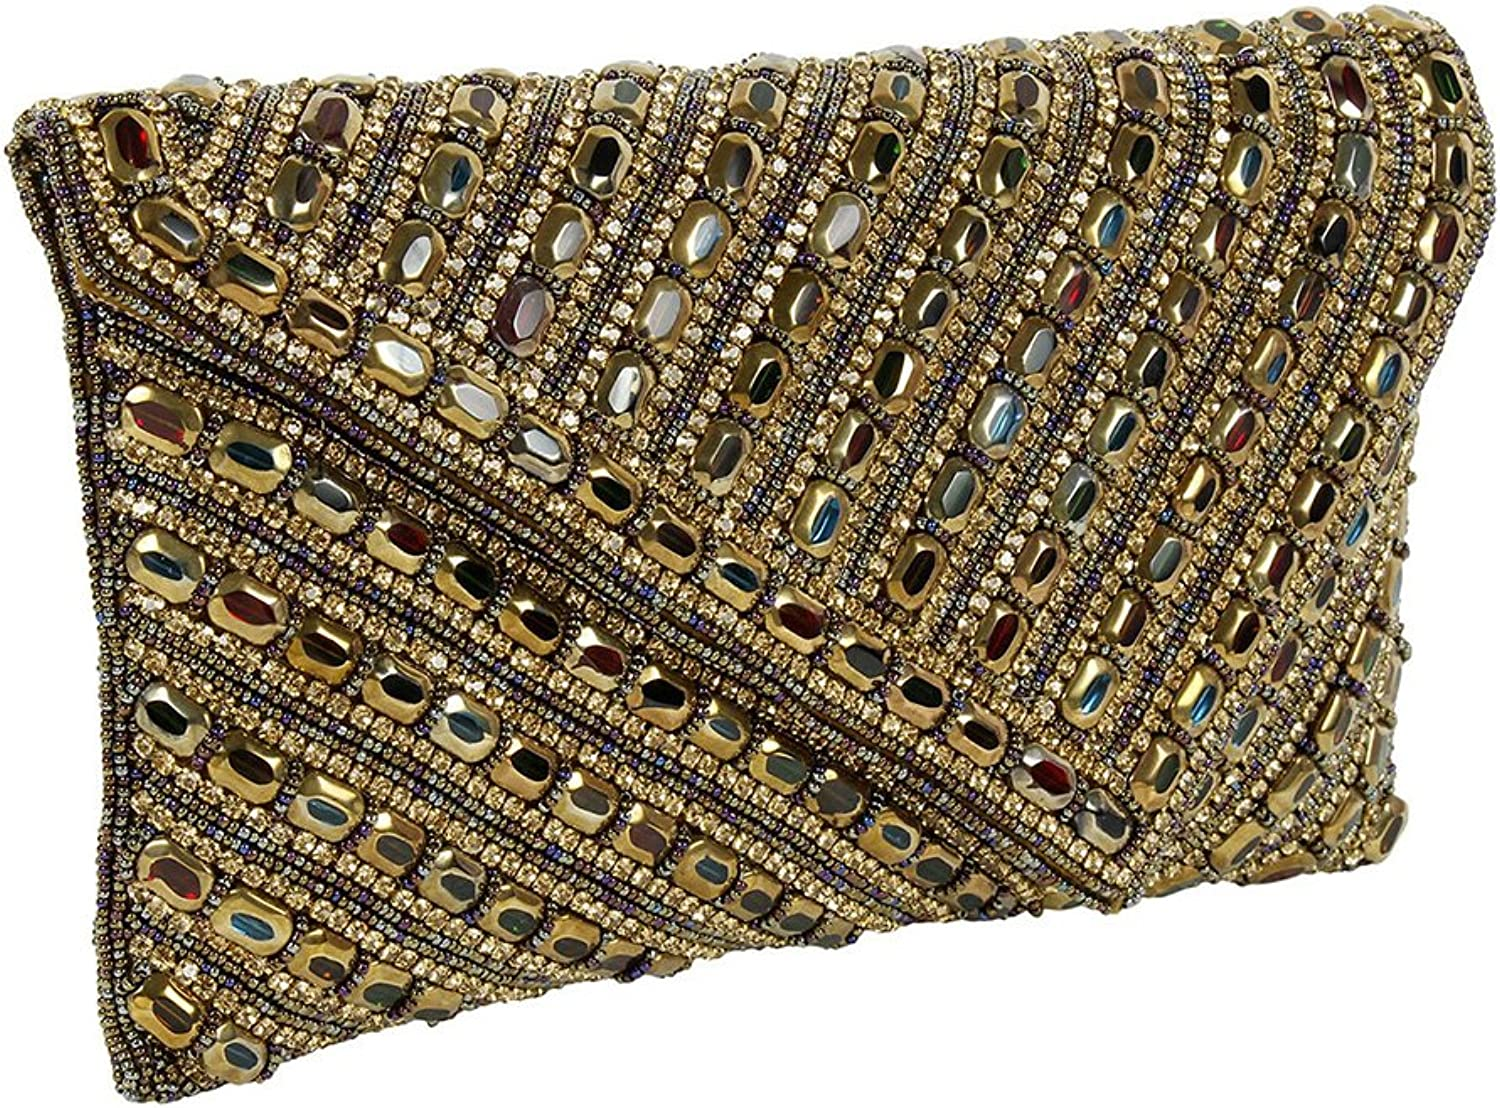 { Extra 10% Discount } Purse Collection Gorgeous Multi Colour Handmade Beaded Clutch Purses For Women's